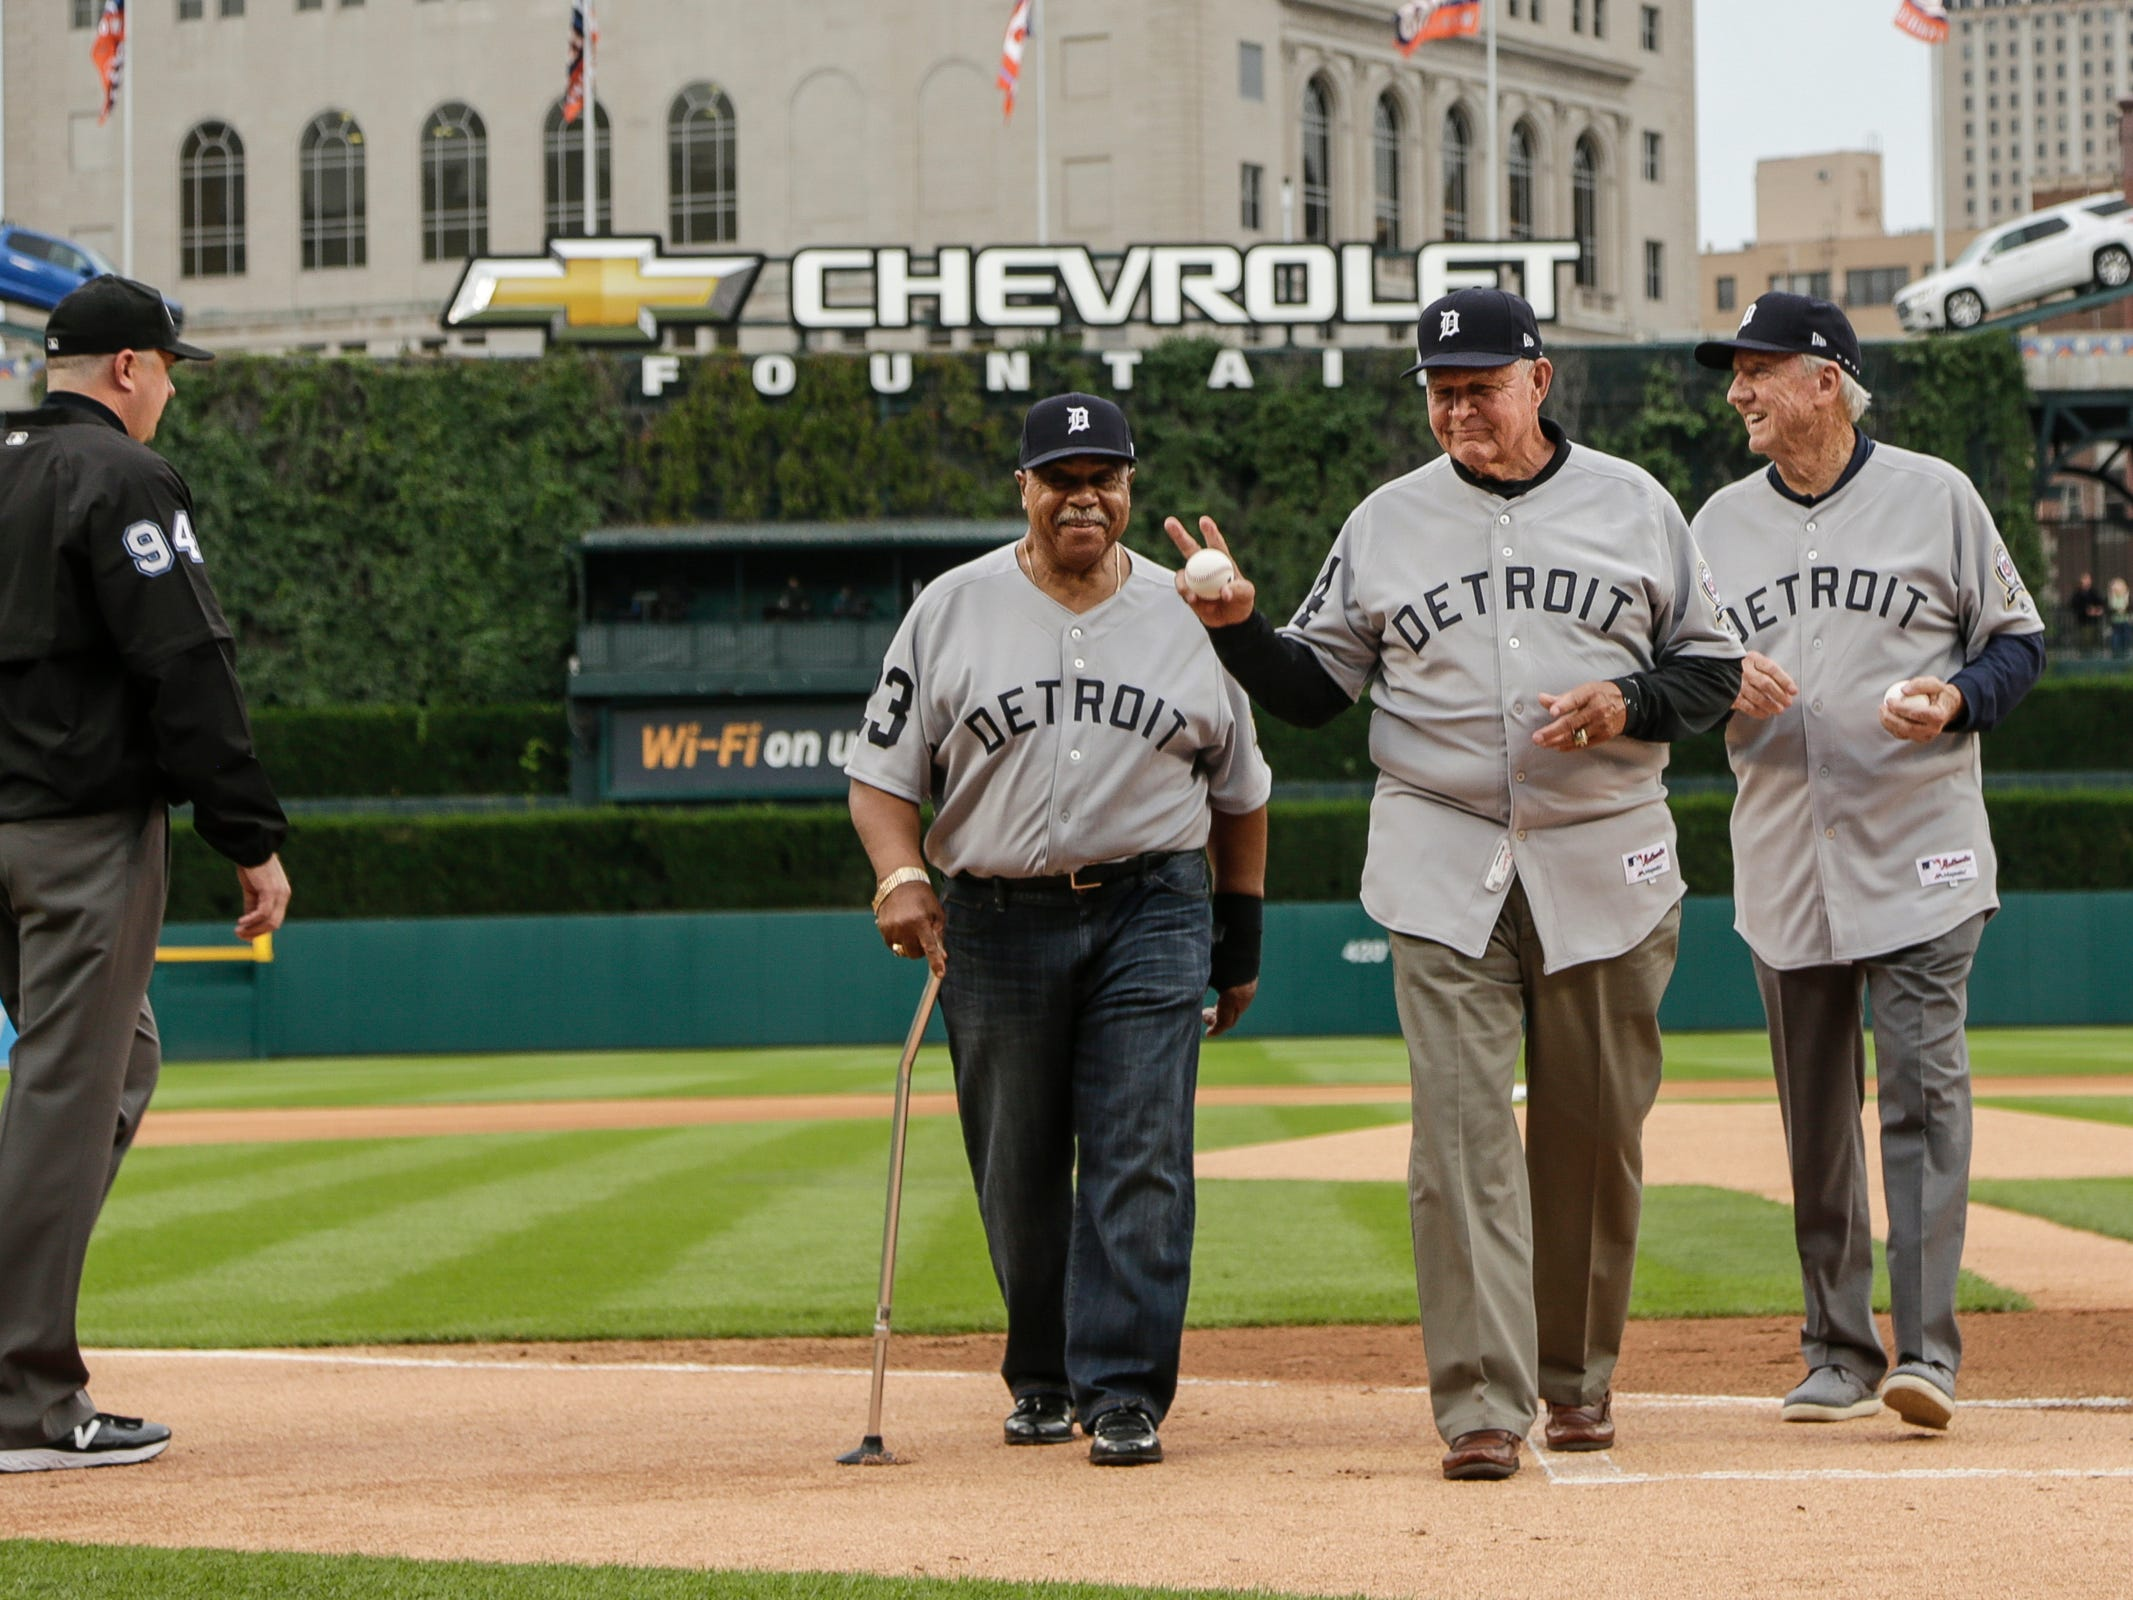 Former Detroit Tigers standouts Willie Horton, Mickey Stanley, and Al Kaline walk off the field after they throw the ceremonial first pitch before the Tigers-Cardinals game at Comerica Park in Detroit, Saturday, Sept. 8, 2018.